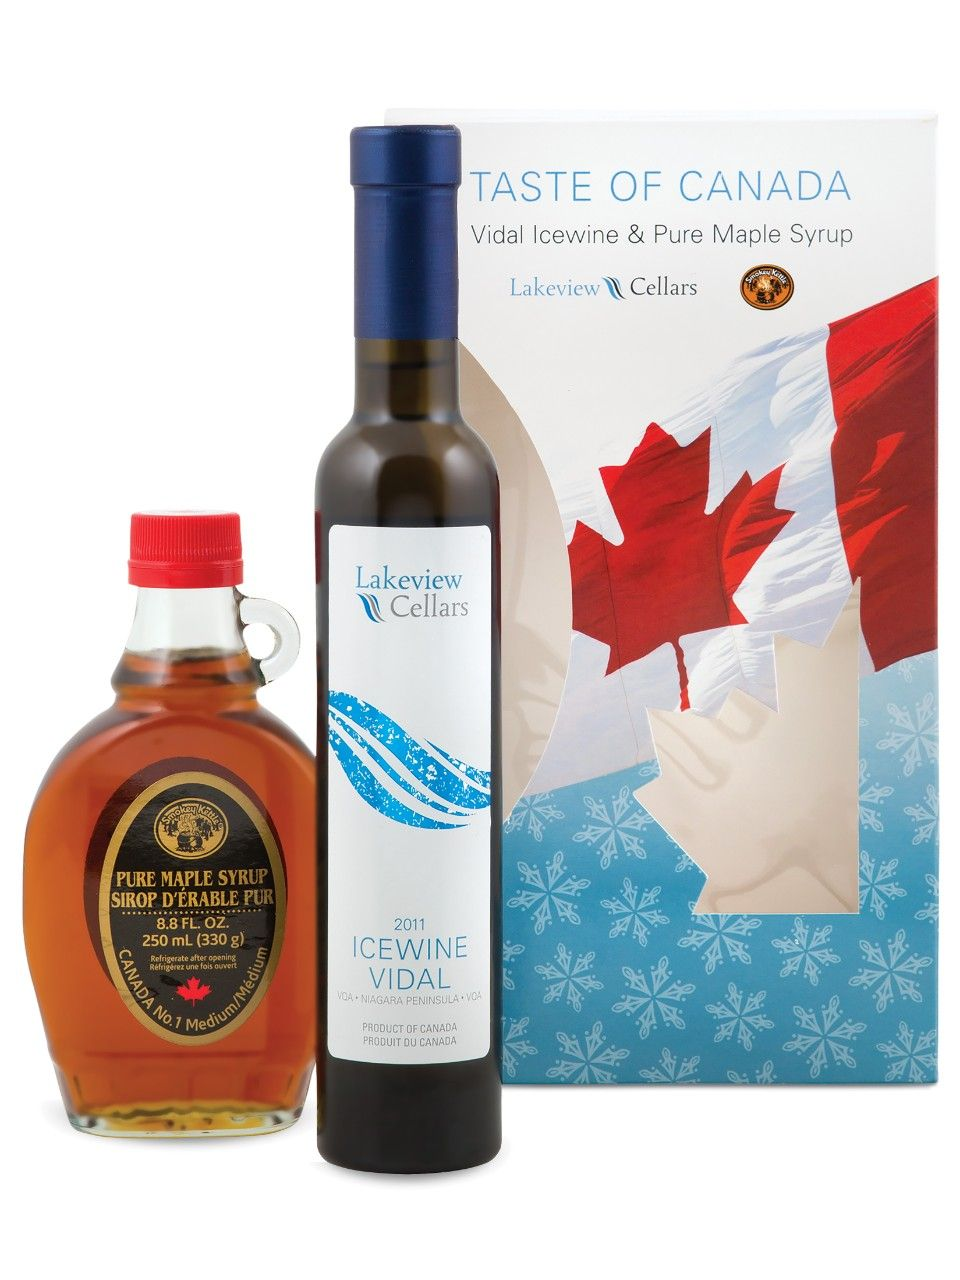 Lakeview Vidal Icewine & Maple Syrup Gift Pack